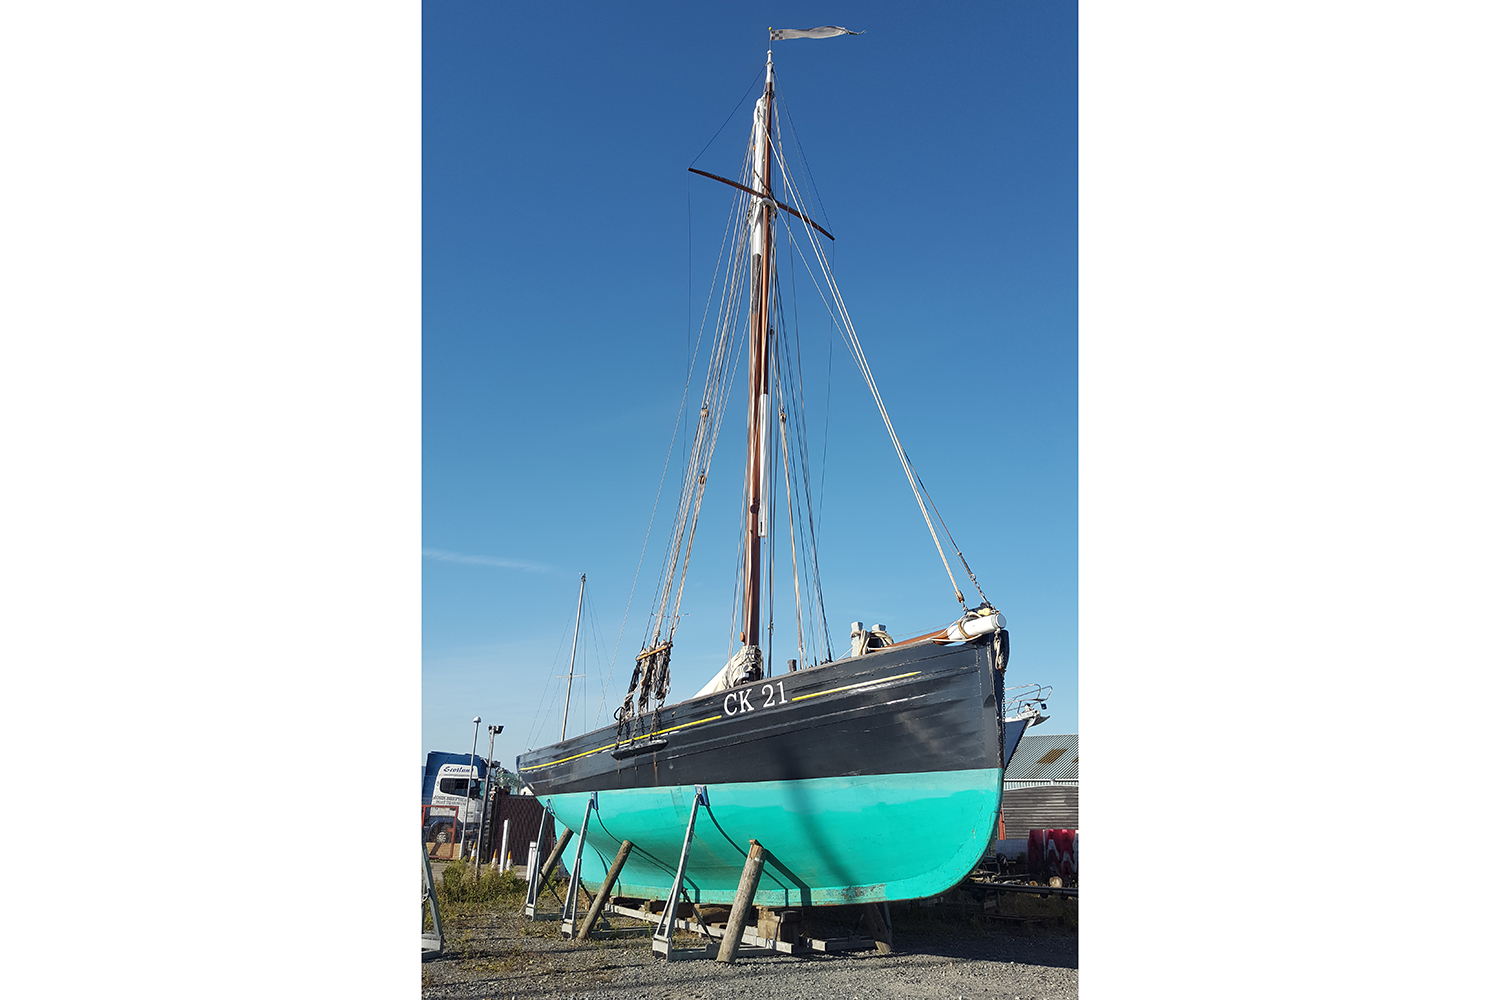 morgan-marine-boatyards-full-of-history